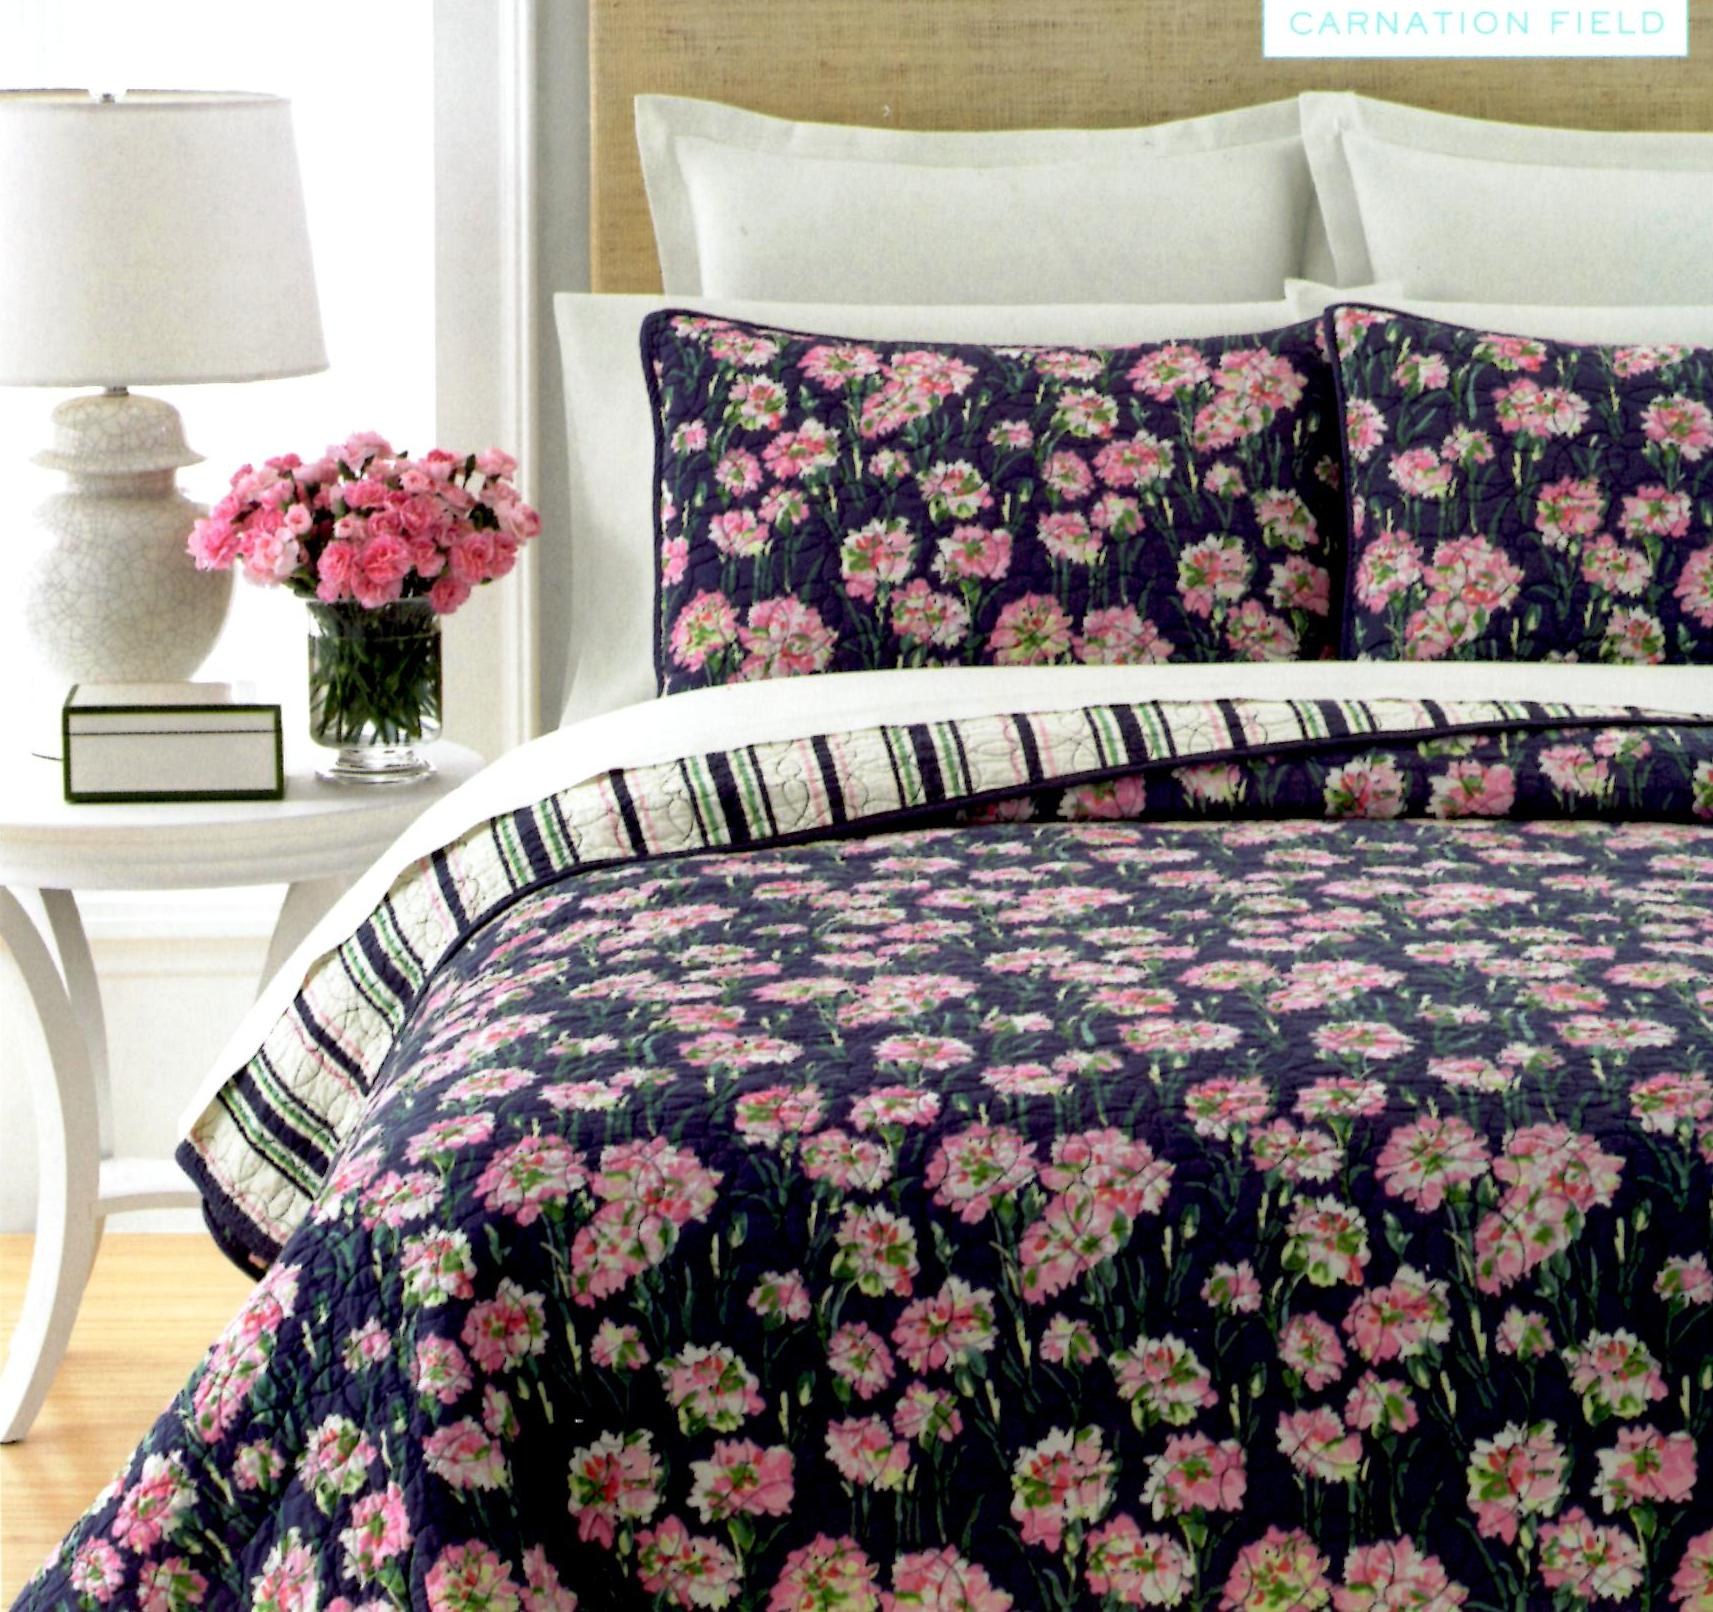 Martha Stewart Carnation Field Queen 3 Piece Quilt Set SOC 1080